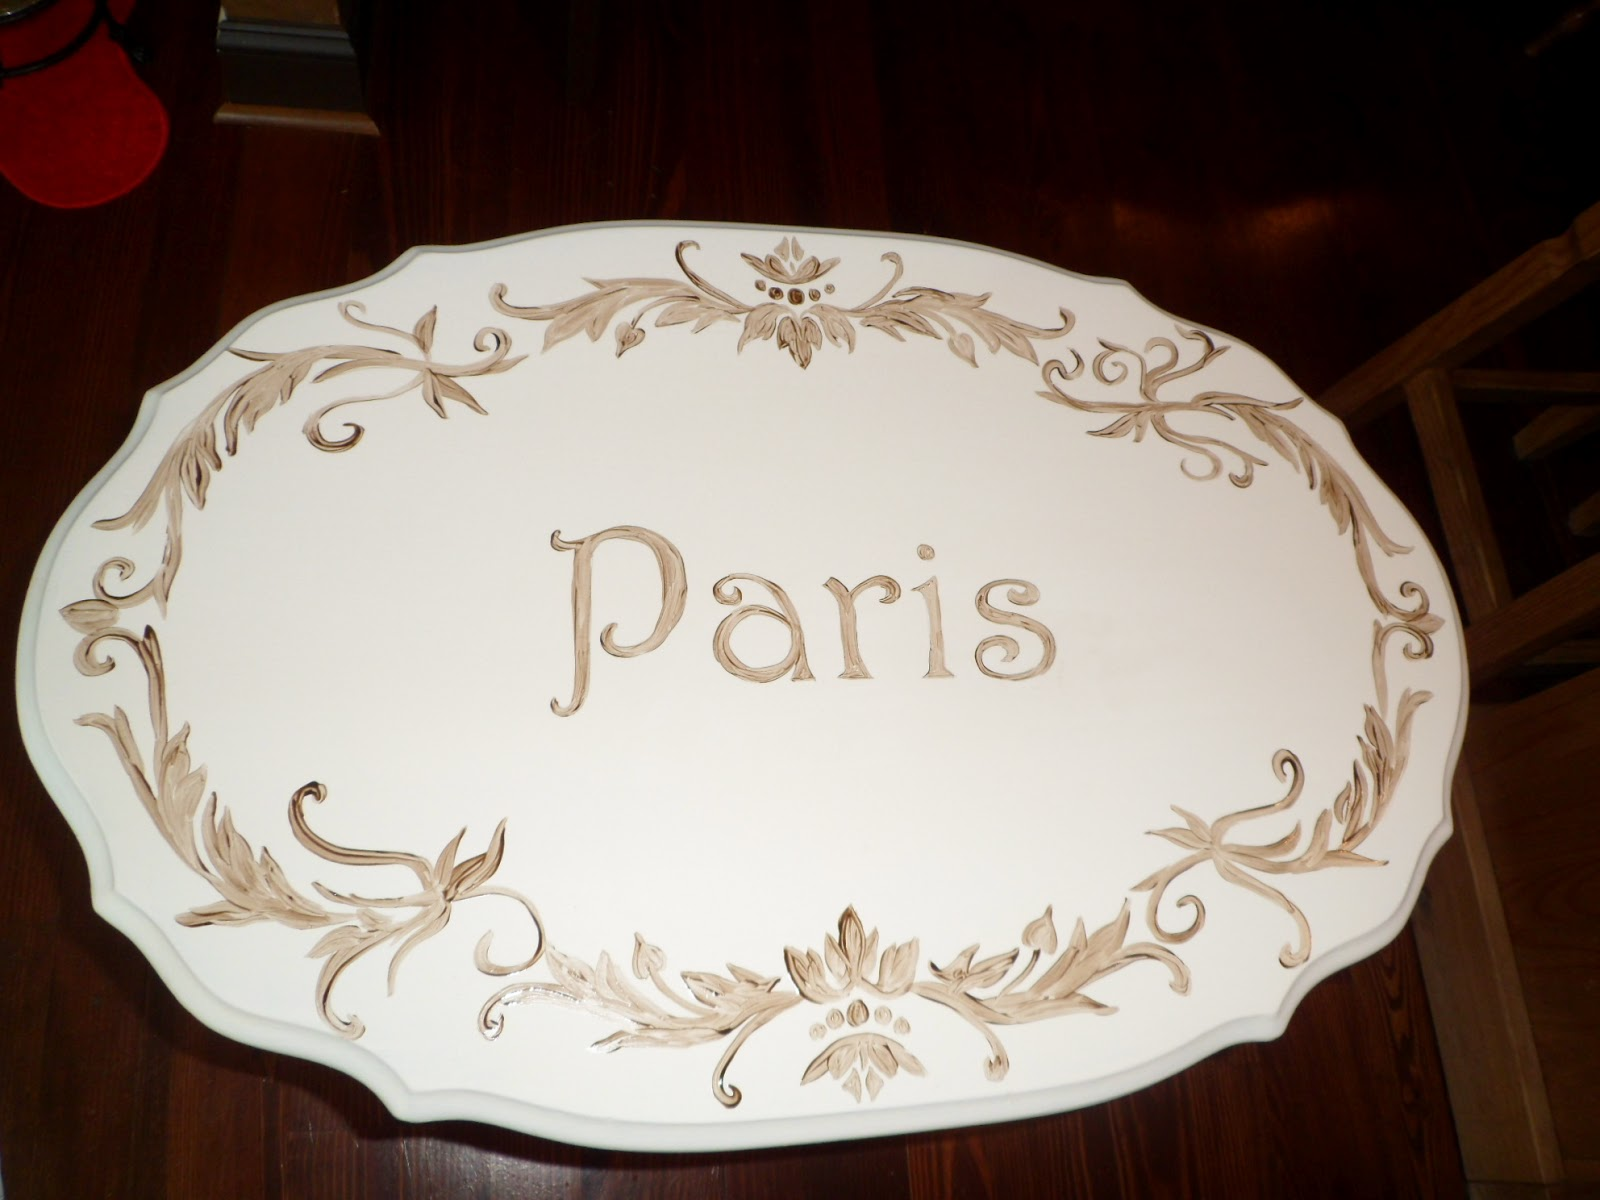 Savard studios french side table and whimsical coat rack for 13 a table paris